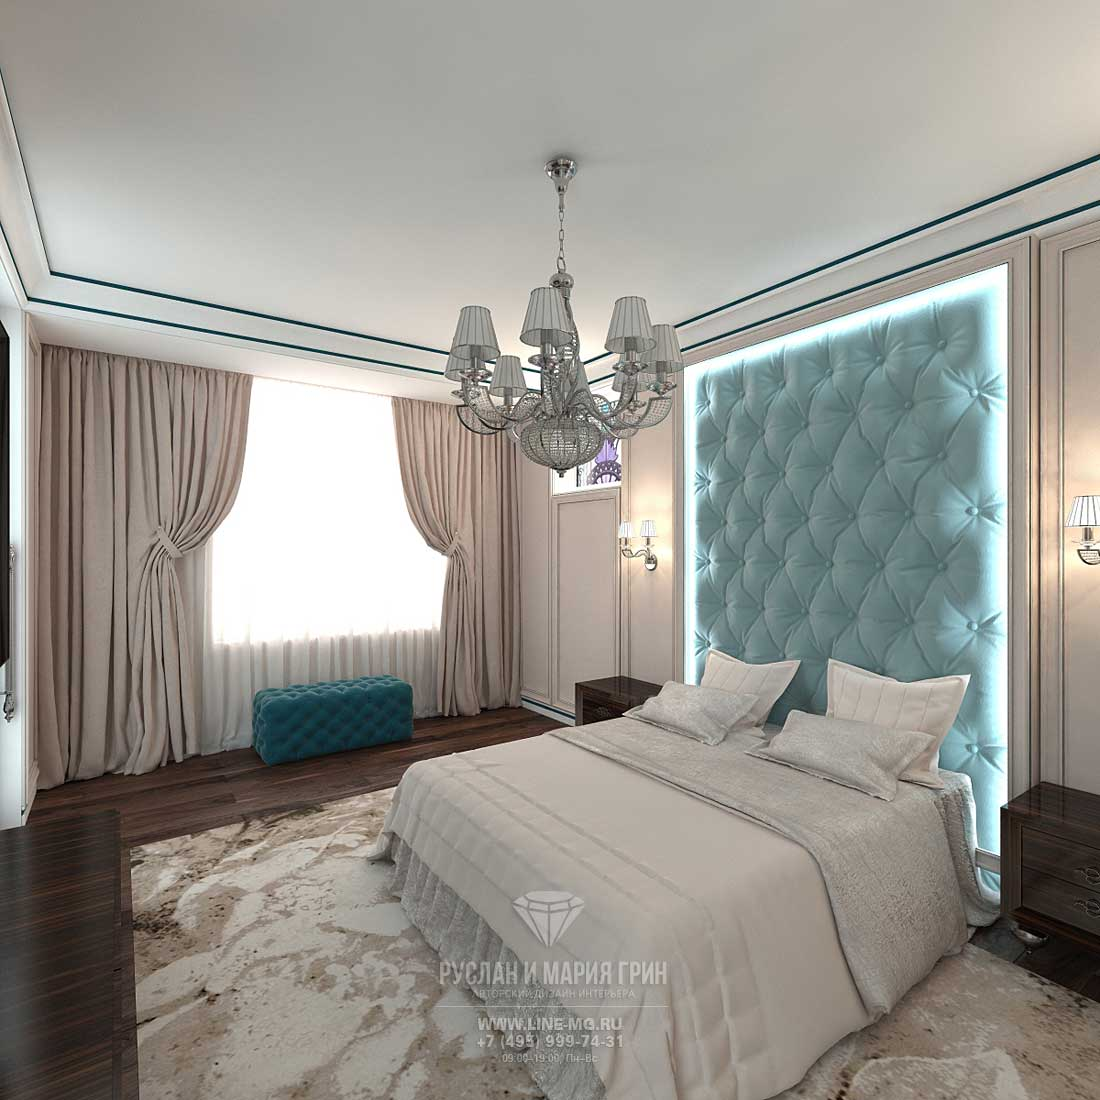 Design a bedroom in a private home. Photo NEW 2015